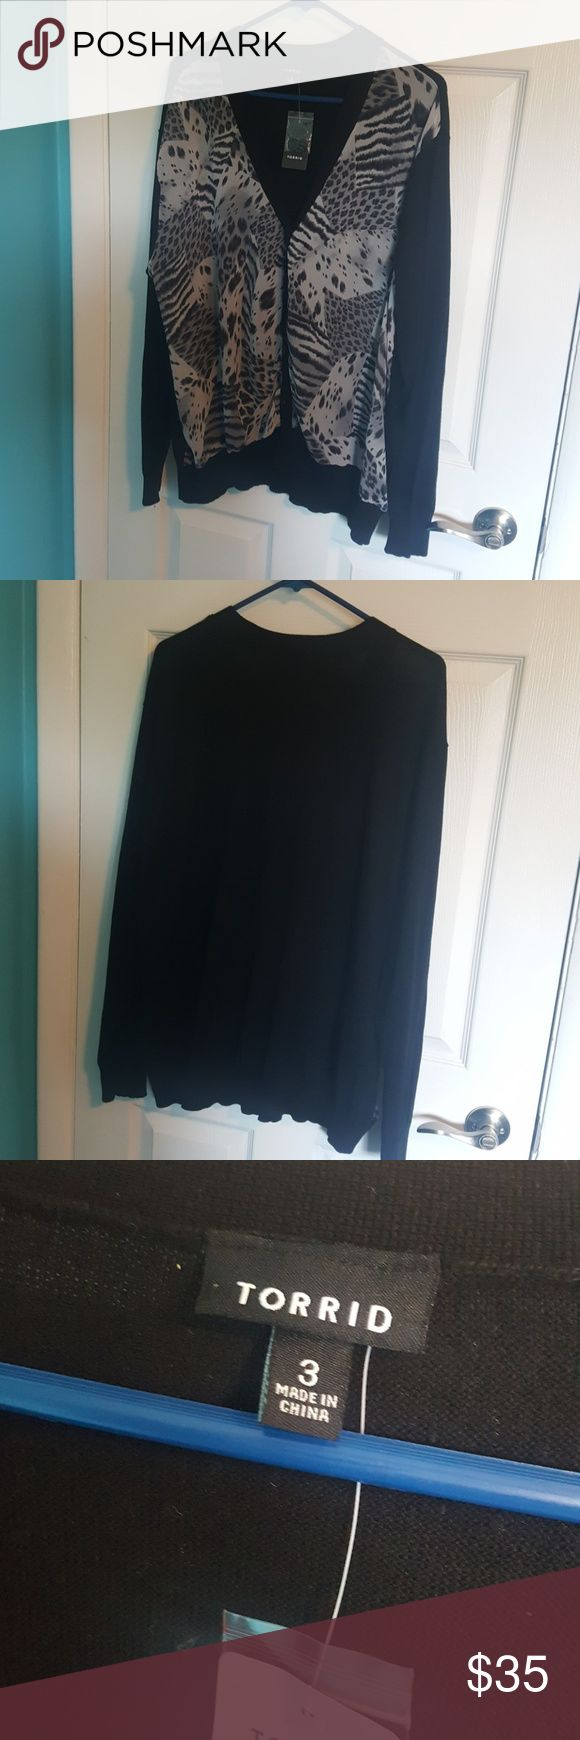 3 Torrid Animal Print Cardigan Never been worn. New with tags. Super cute animal print cardigan with black buttons and a solid black back. Coming from a smoke & pet free home. torrid Sweaters Cardigans